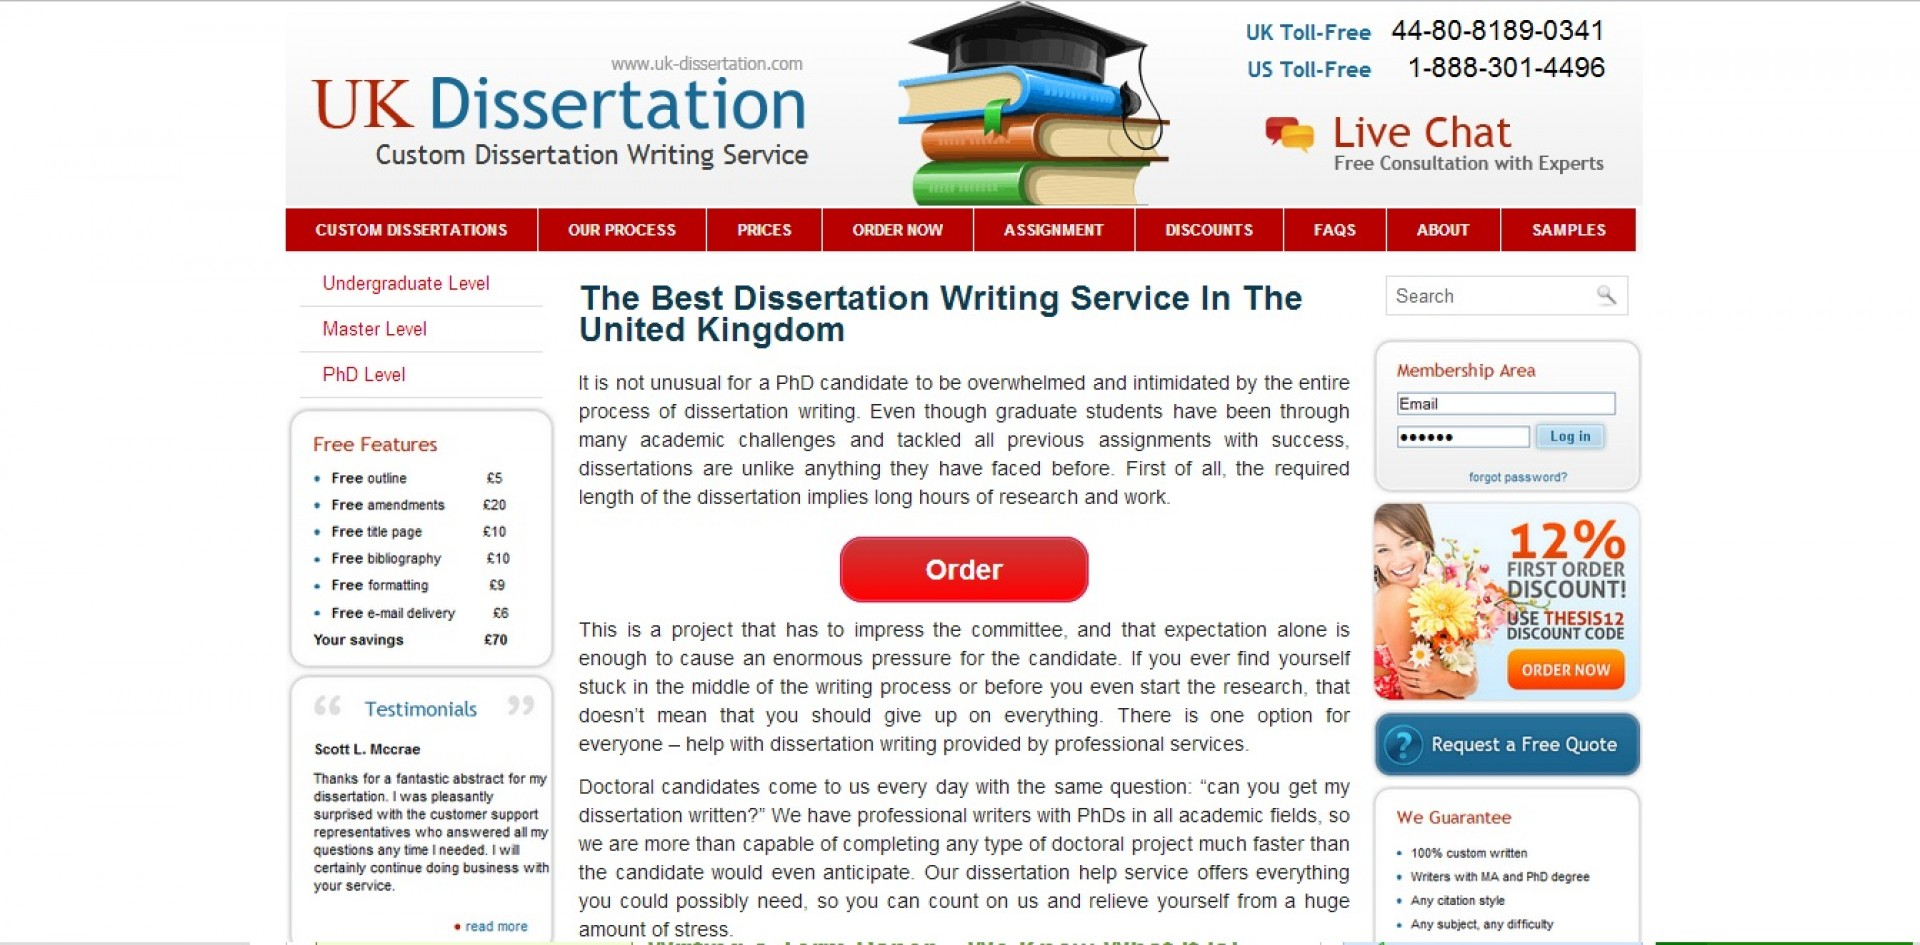 008 Custom Essays Essay Example 3048095565 Urgent Awesome Australia Uk Review 1920